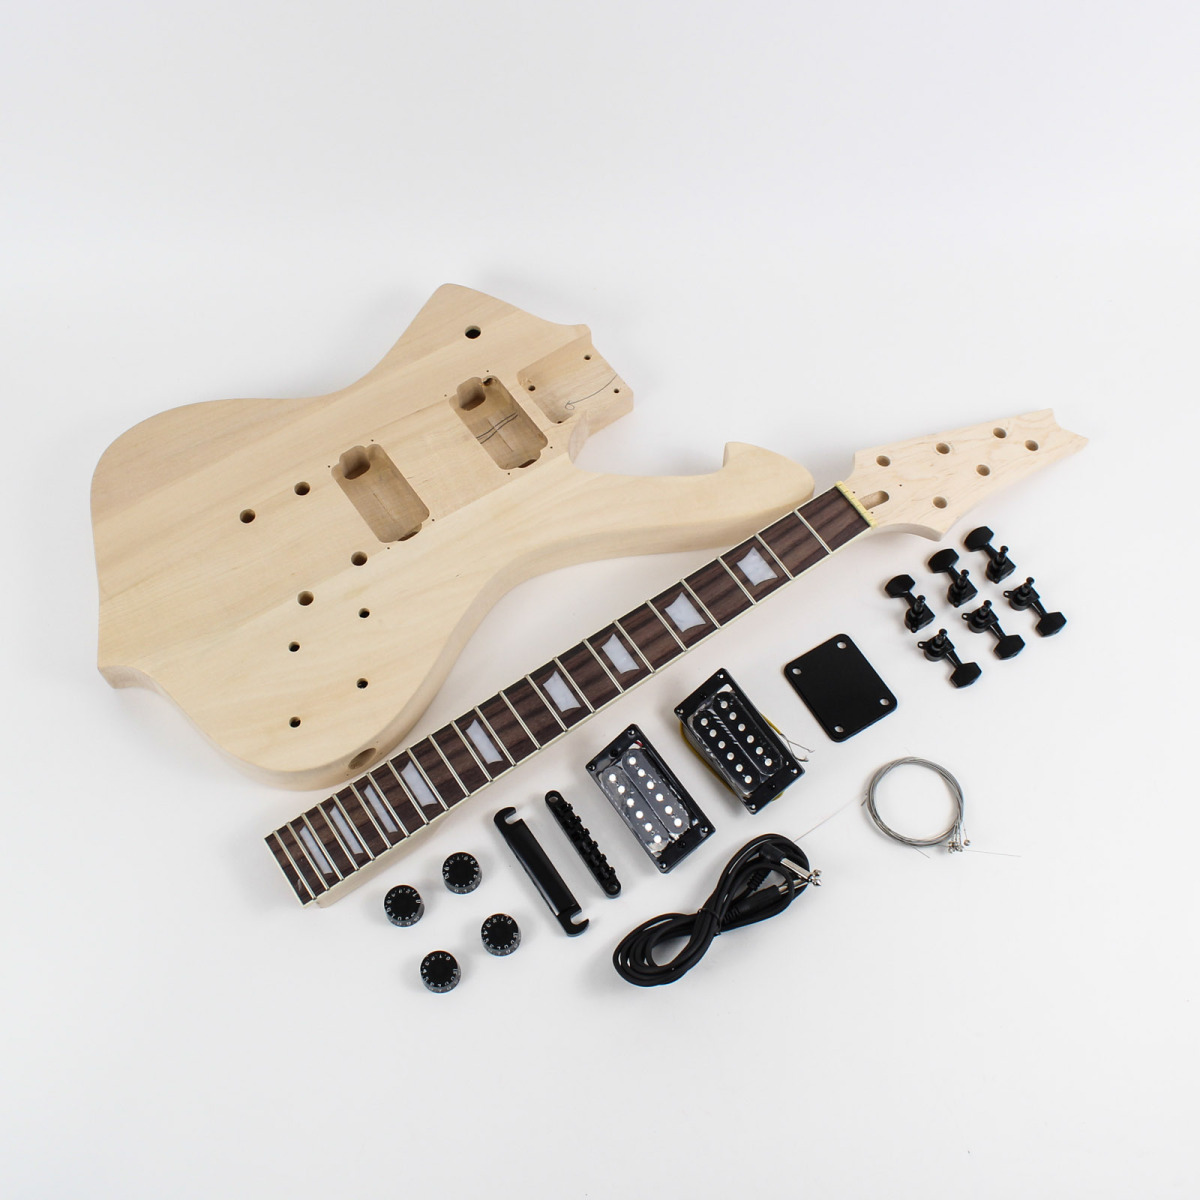 ibanez iceman style guitar kit diy guitars. Black Bedroom Furniture Sets. Home Design Ideas